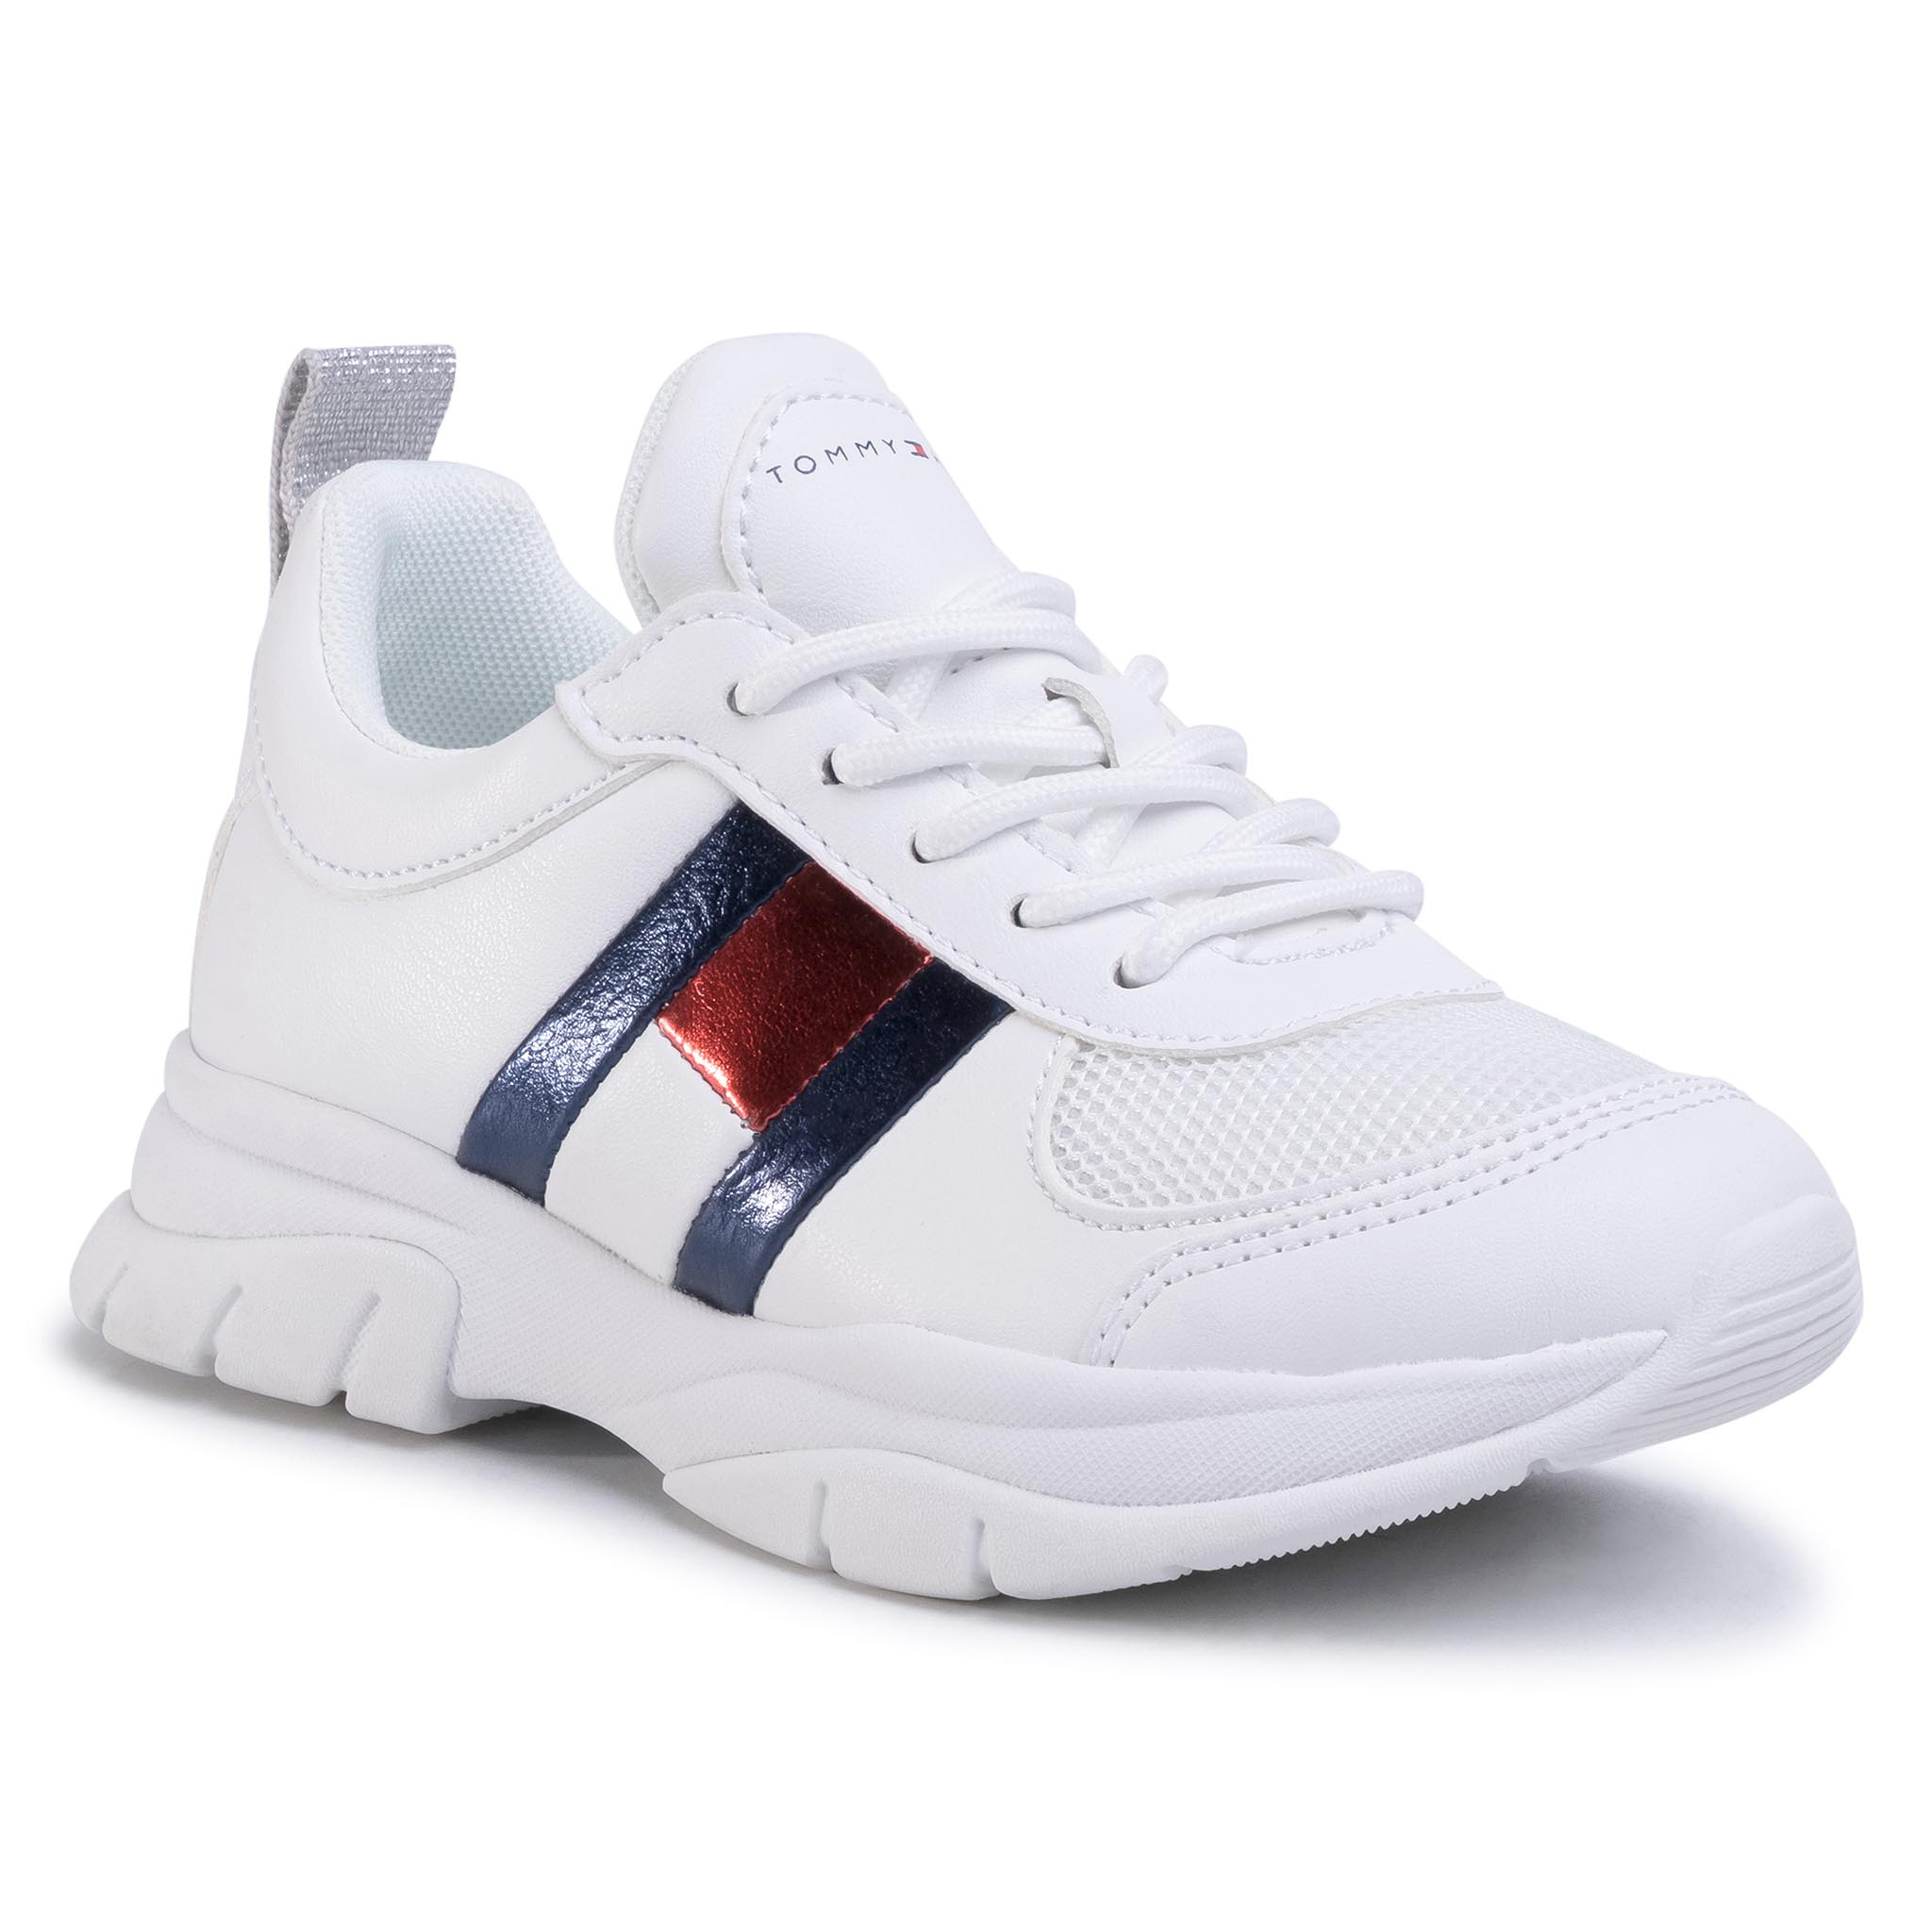 Sneakers TOMMY HILFIGER - Low Cut Lace-Up Sneaker T3A4-30633-0968 M White 100